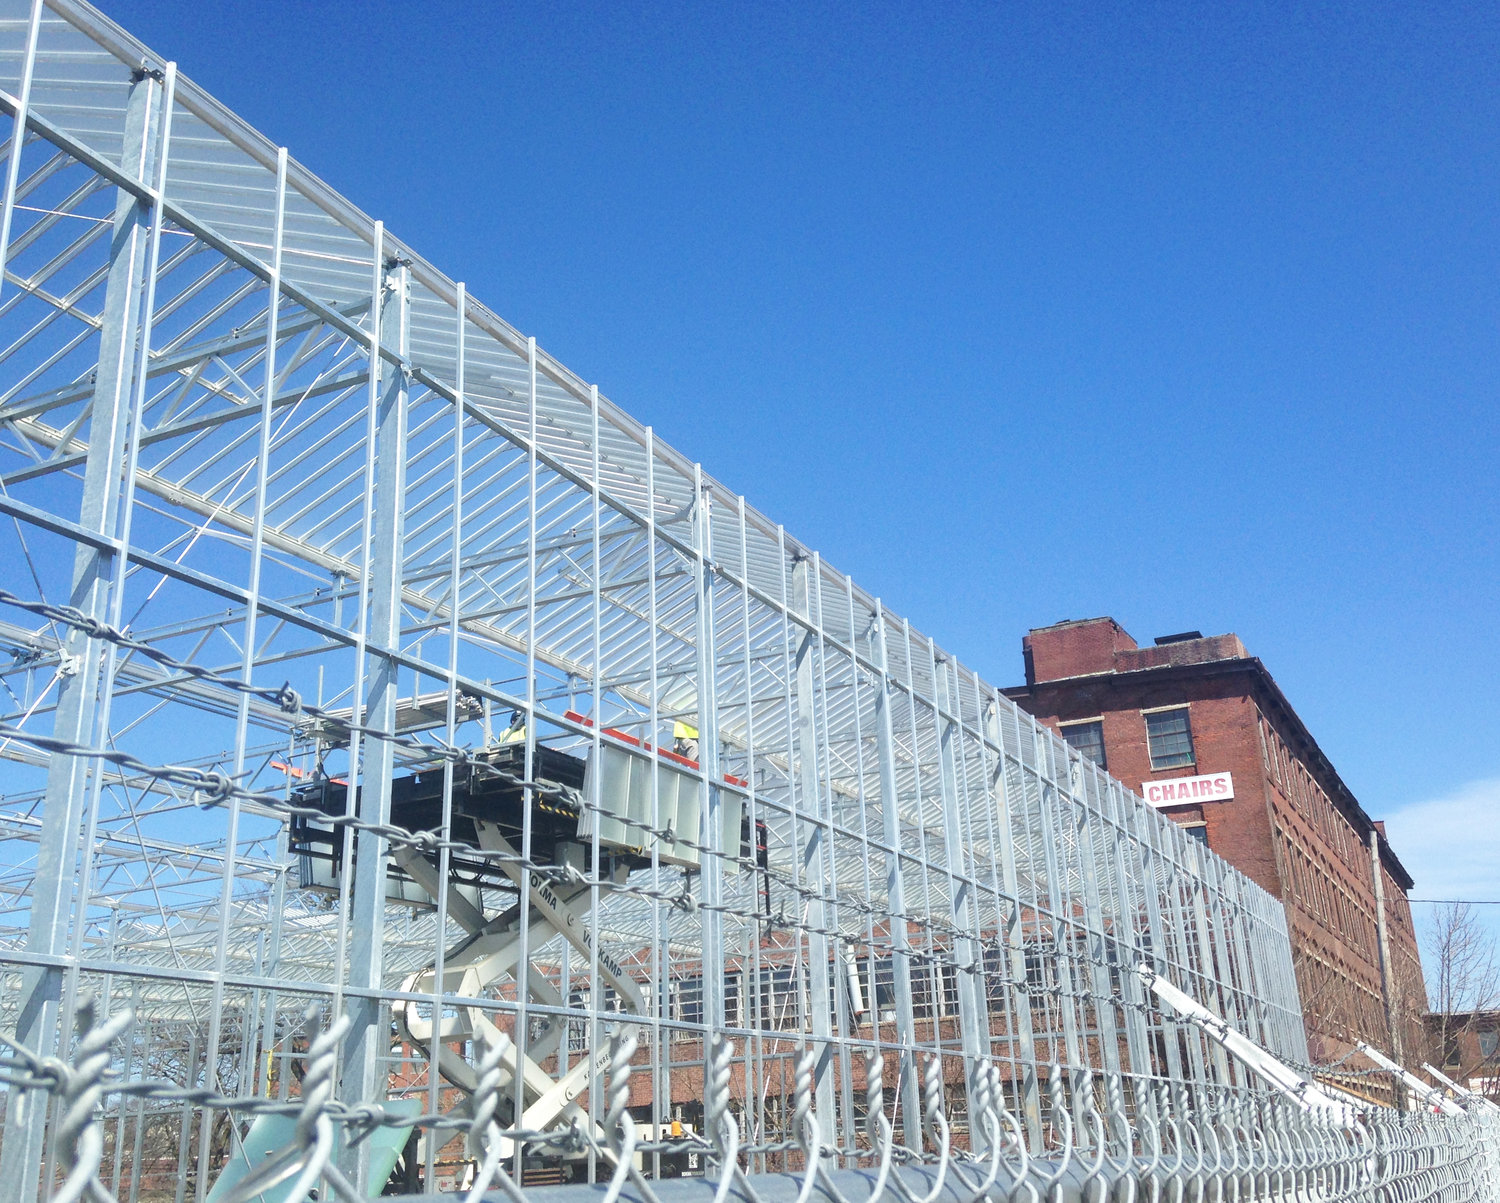 The new Gotham Greens urban greenhouse factory now under construction in Olneyville.